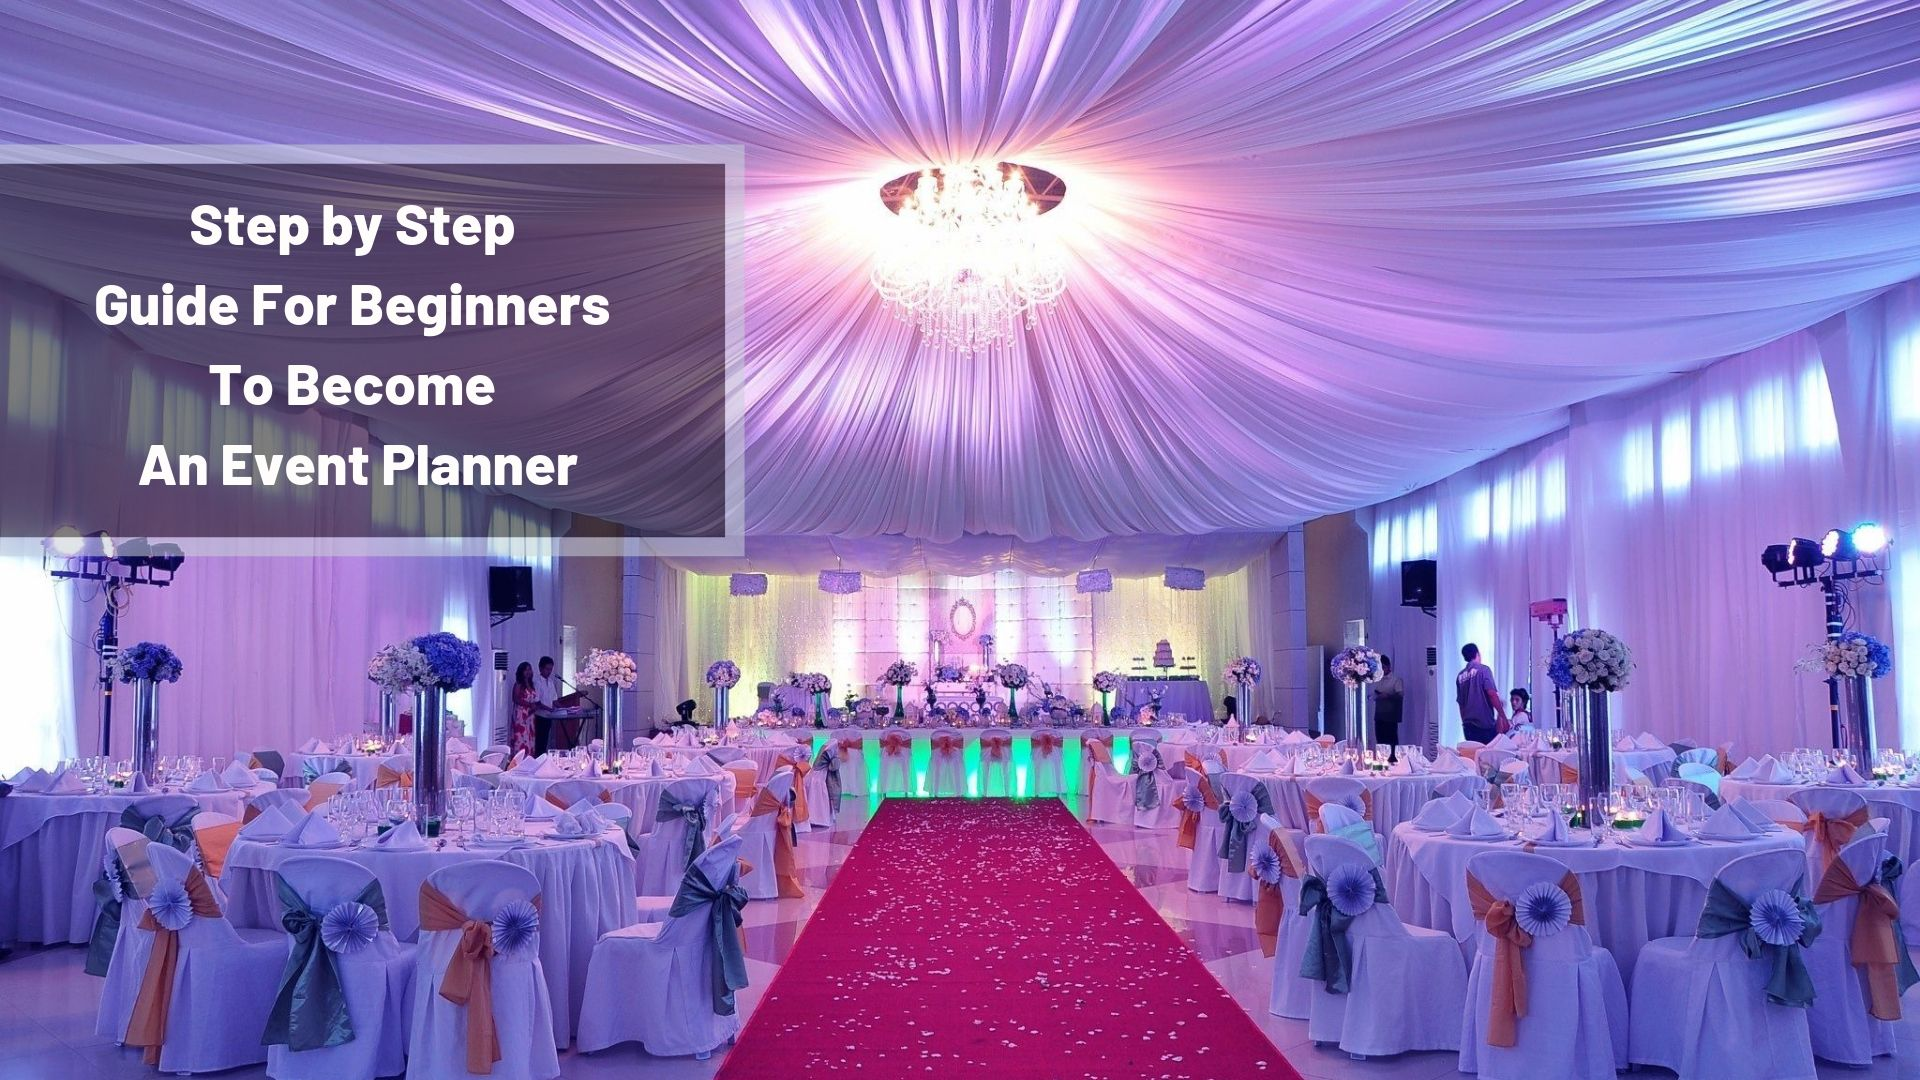 A Step by Step Guide For Beginners To Become An Event Planner